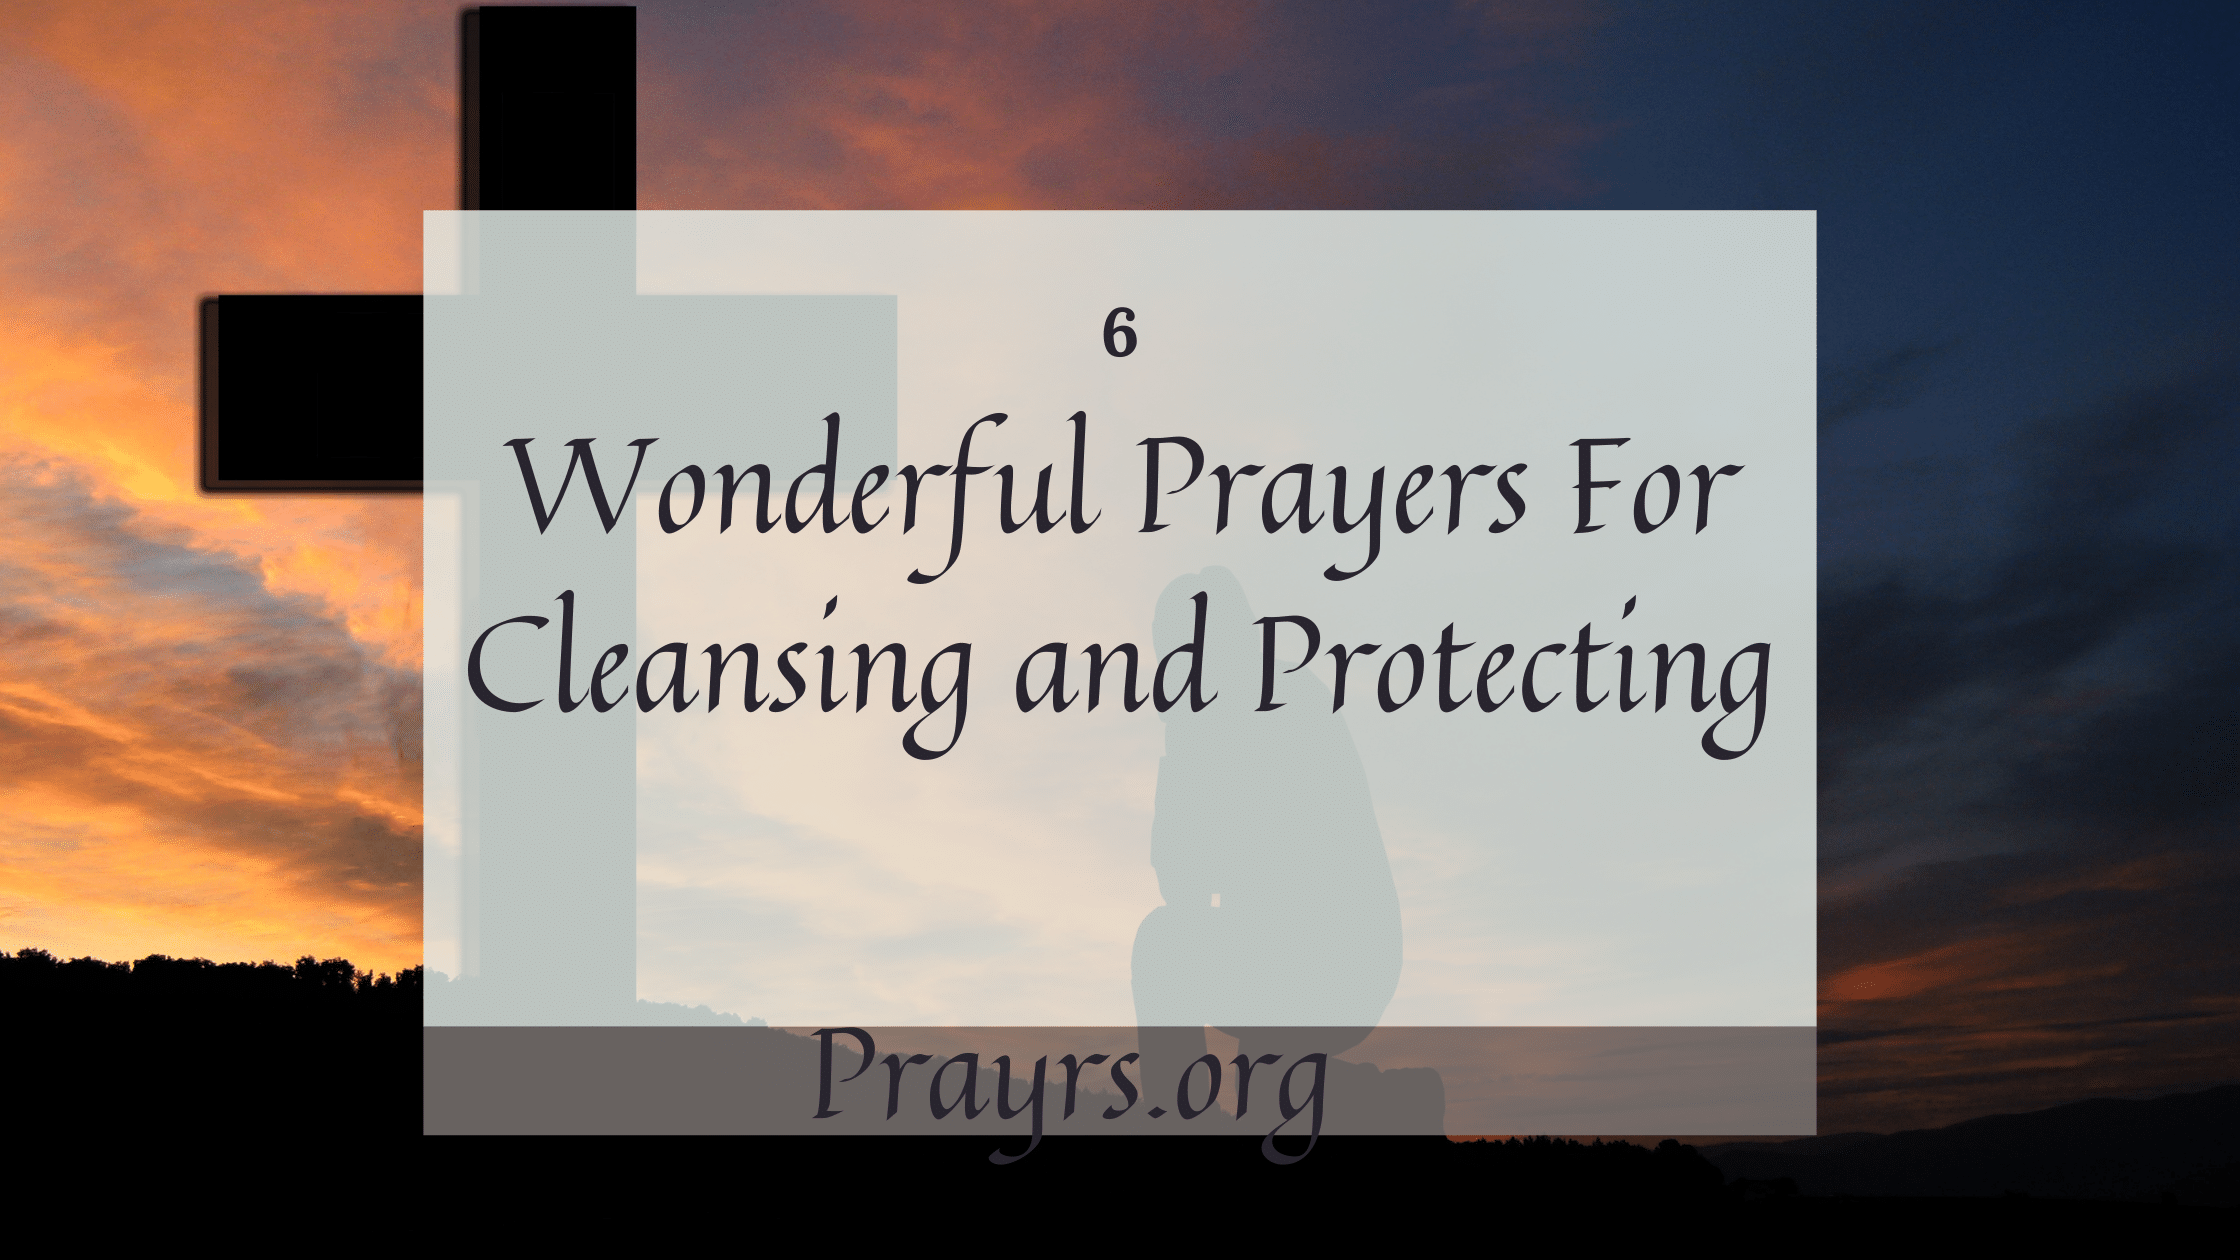 Prayers For Cleansing and Protecting